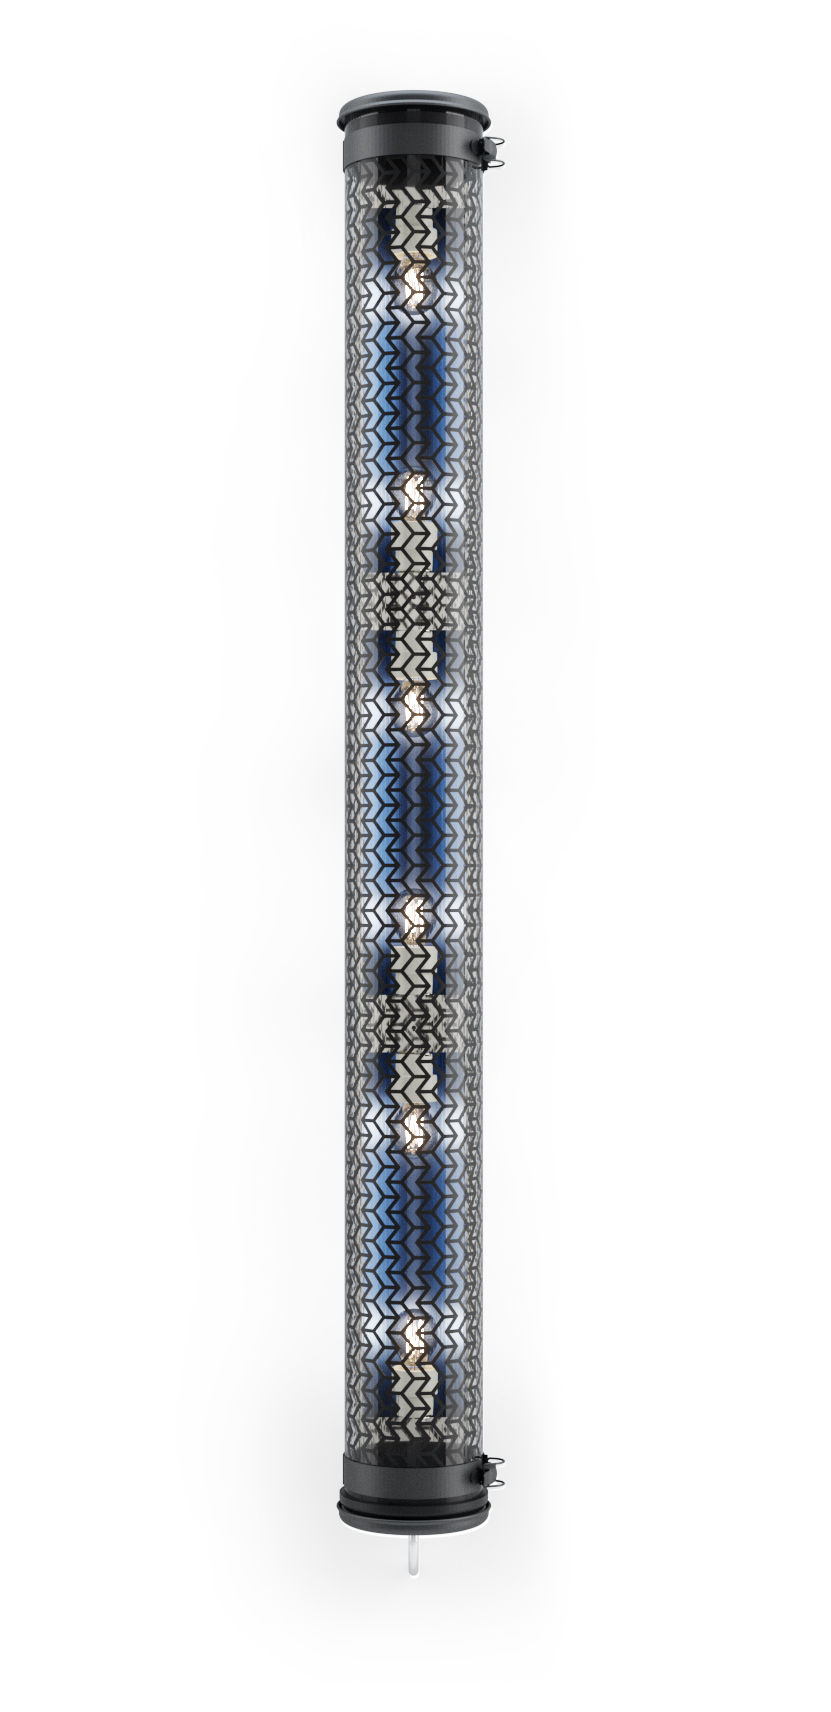 Lighting - Wall Lights - Monceau Wall light - / Pendant - L 134 cm by SAMMODE STUDIO - Black / Petrol Blue - Anodized aluminium, Polycarbonate, Stainless steel